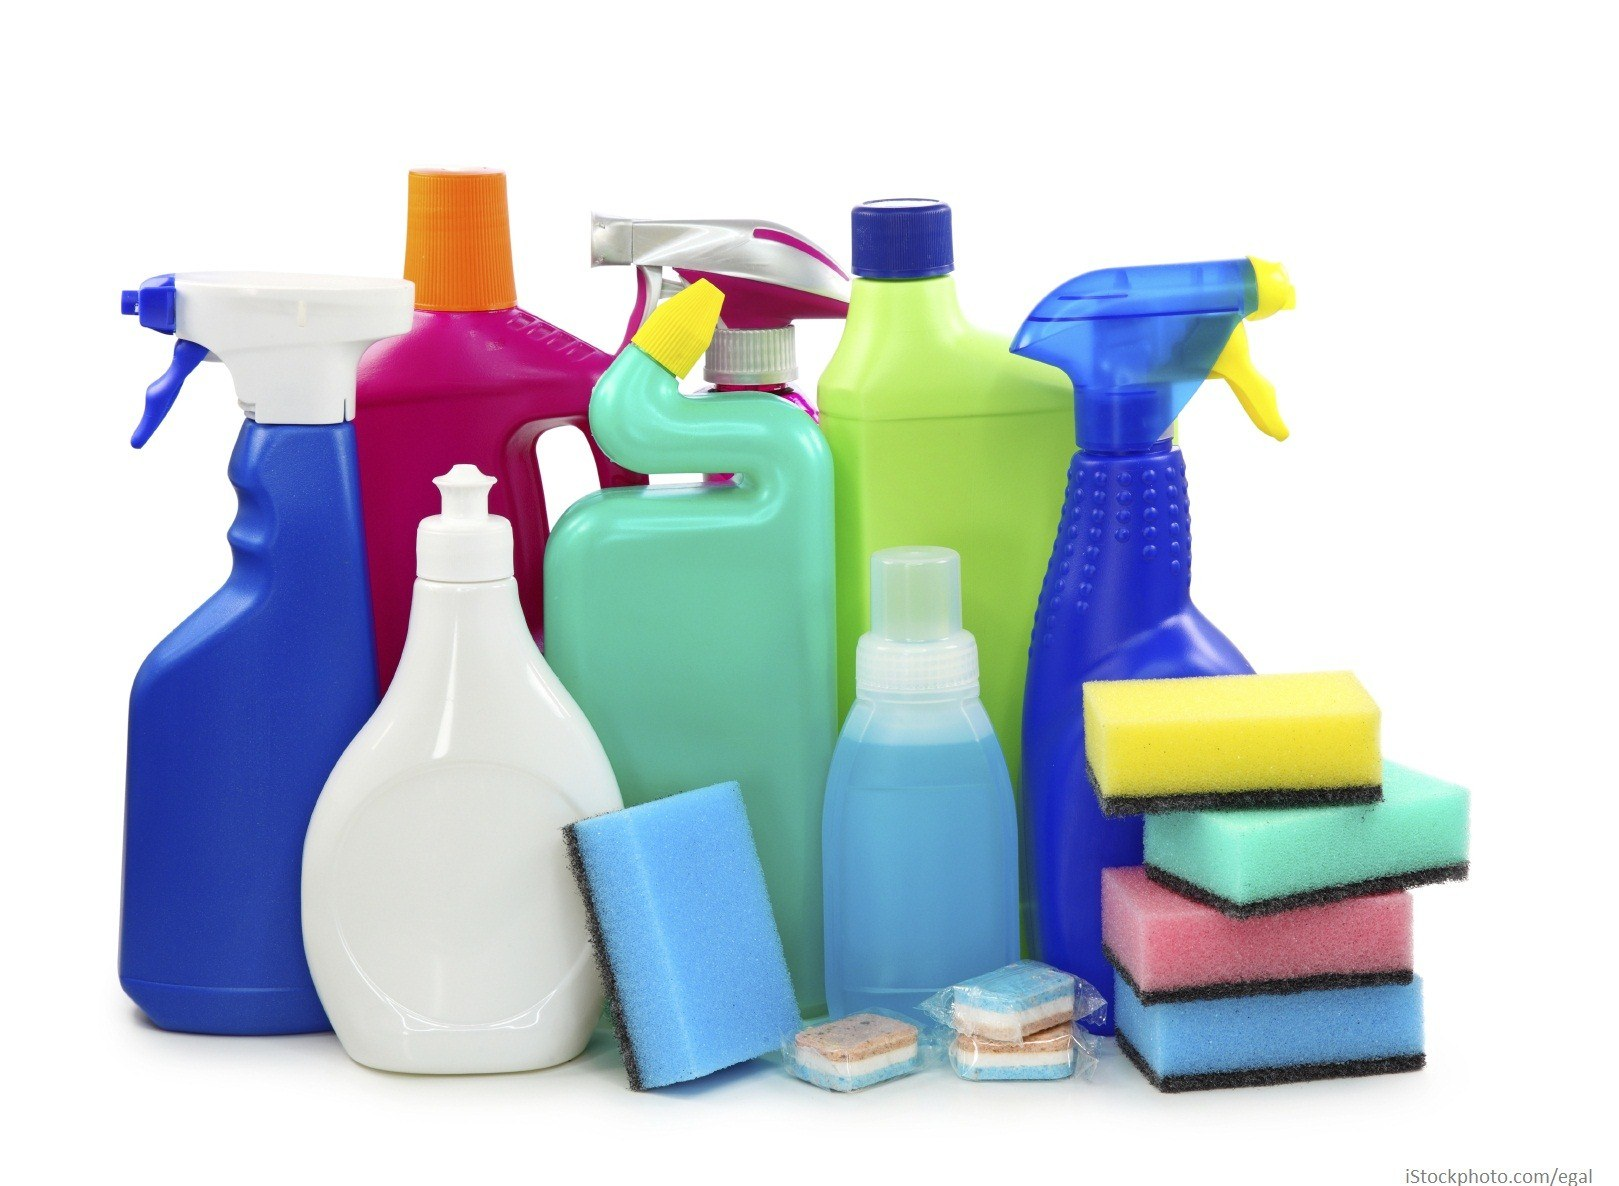 Cleaning products, sponges and dish washer or washing machine tablets